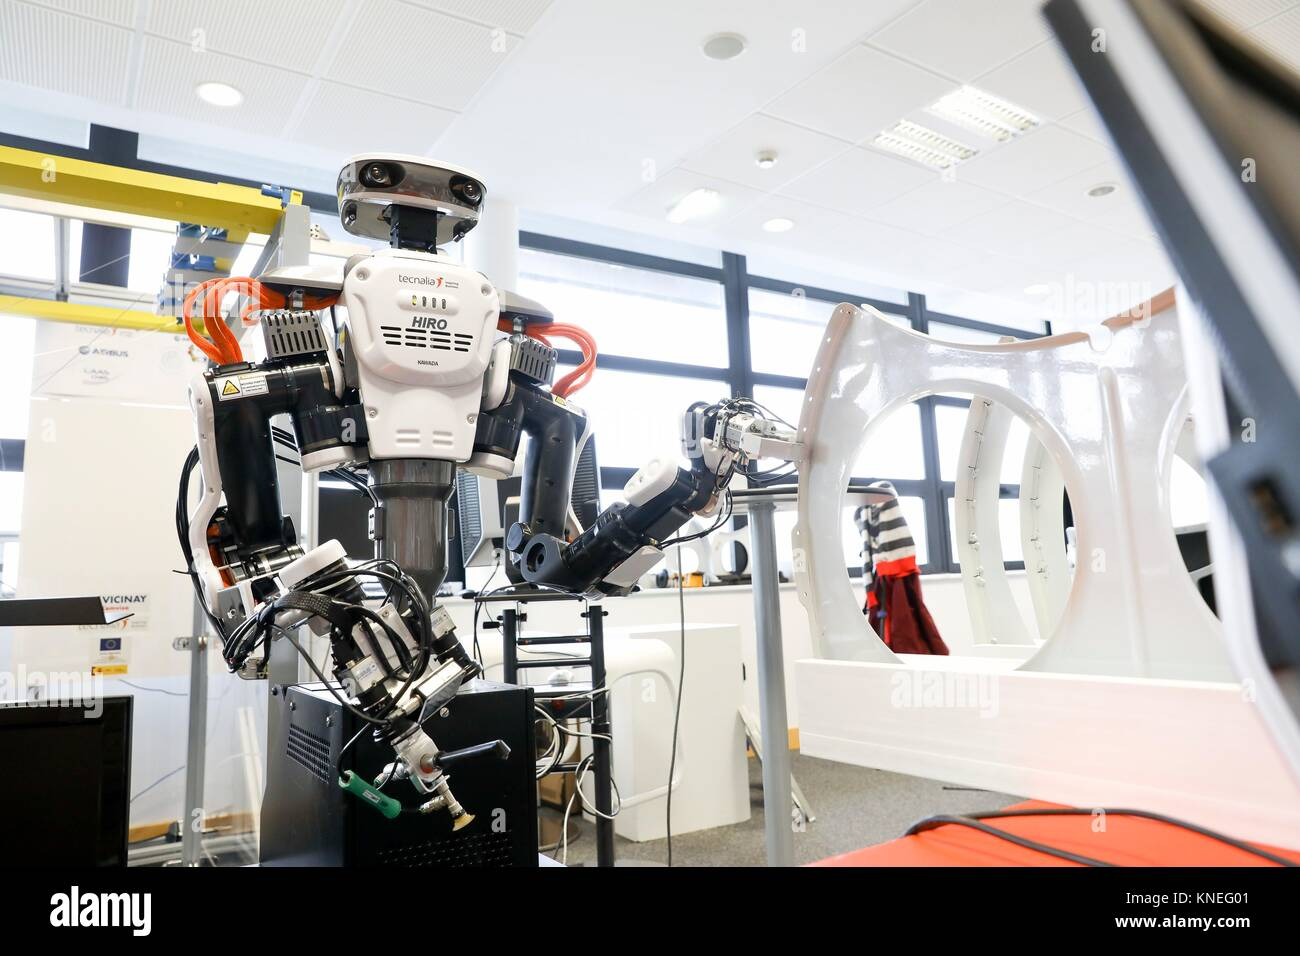 Robot with two arms for flexible robotics. Humanoid robot for automotive assembly tasks in collaboration with people, Stock Photo